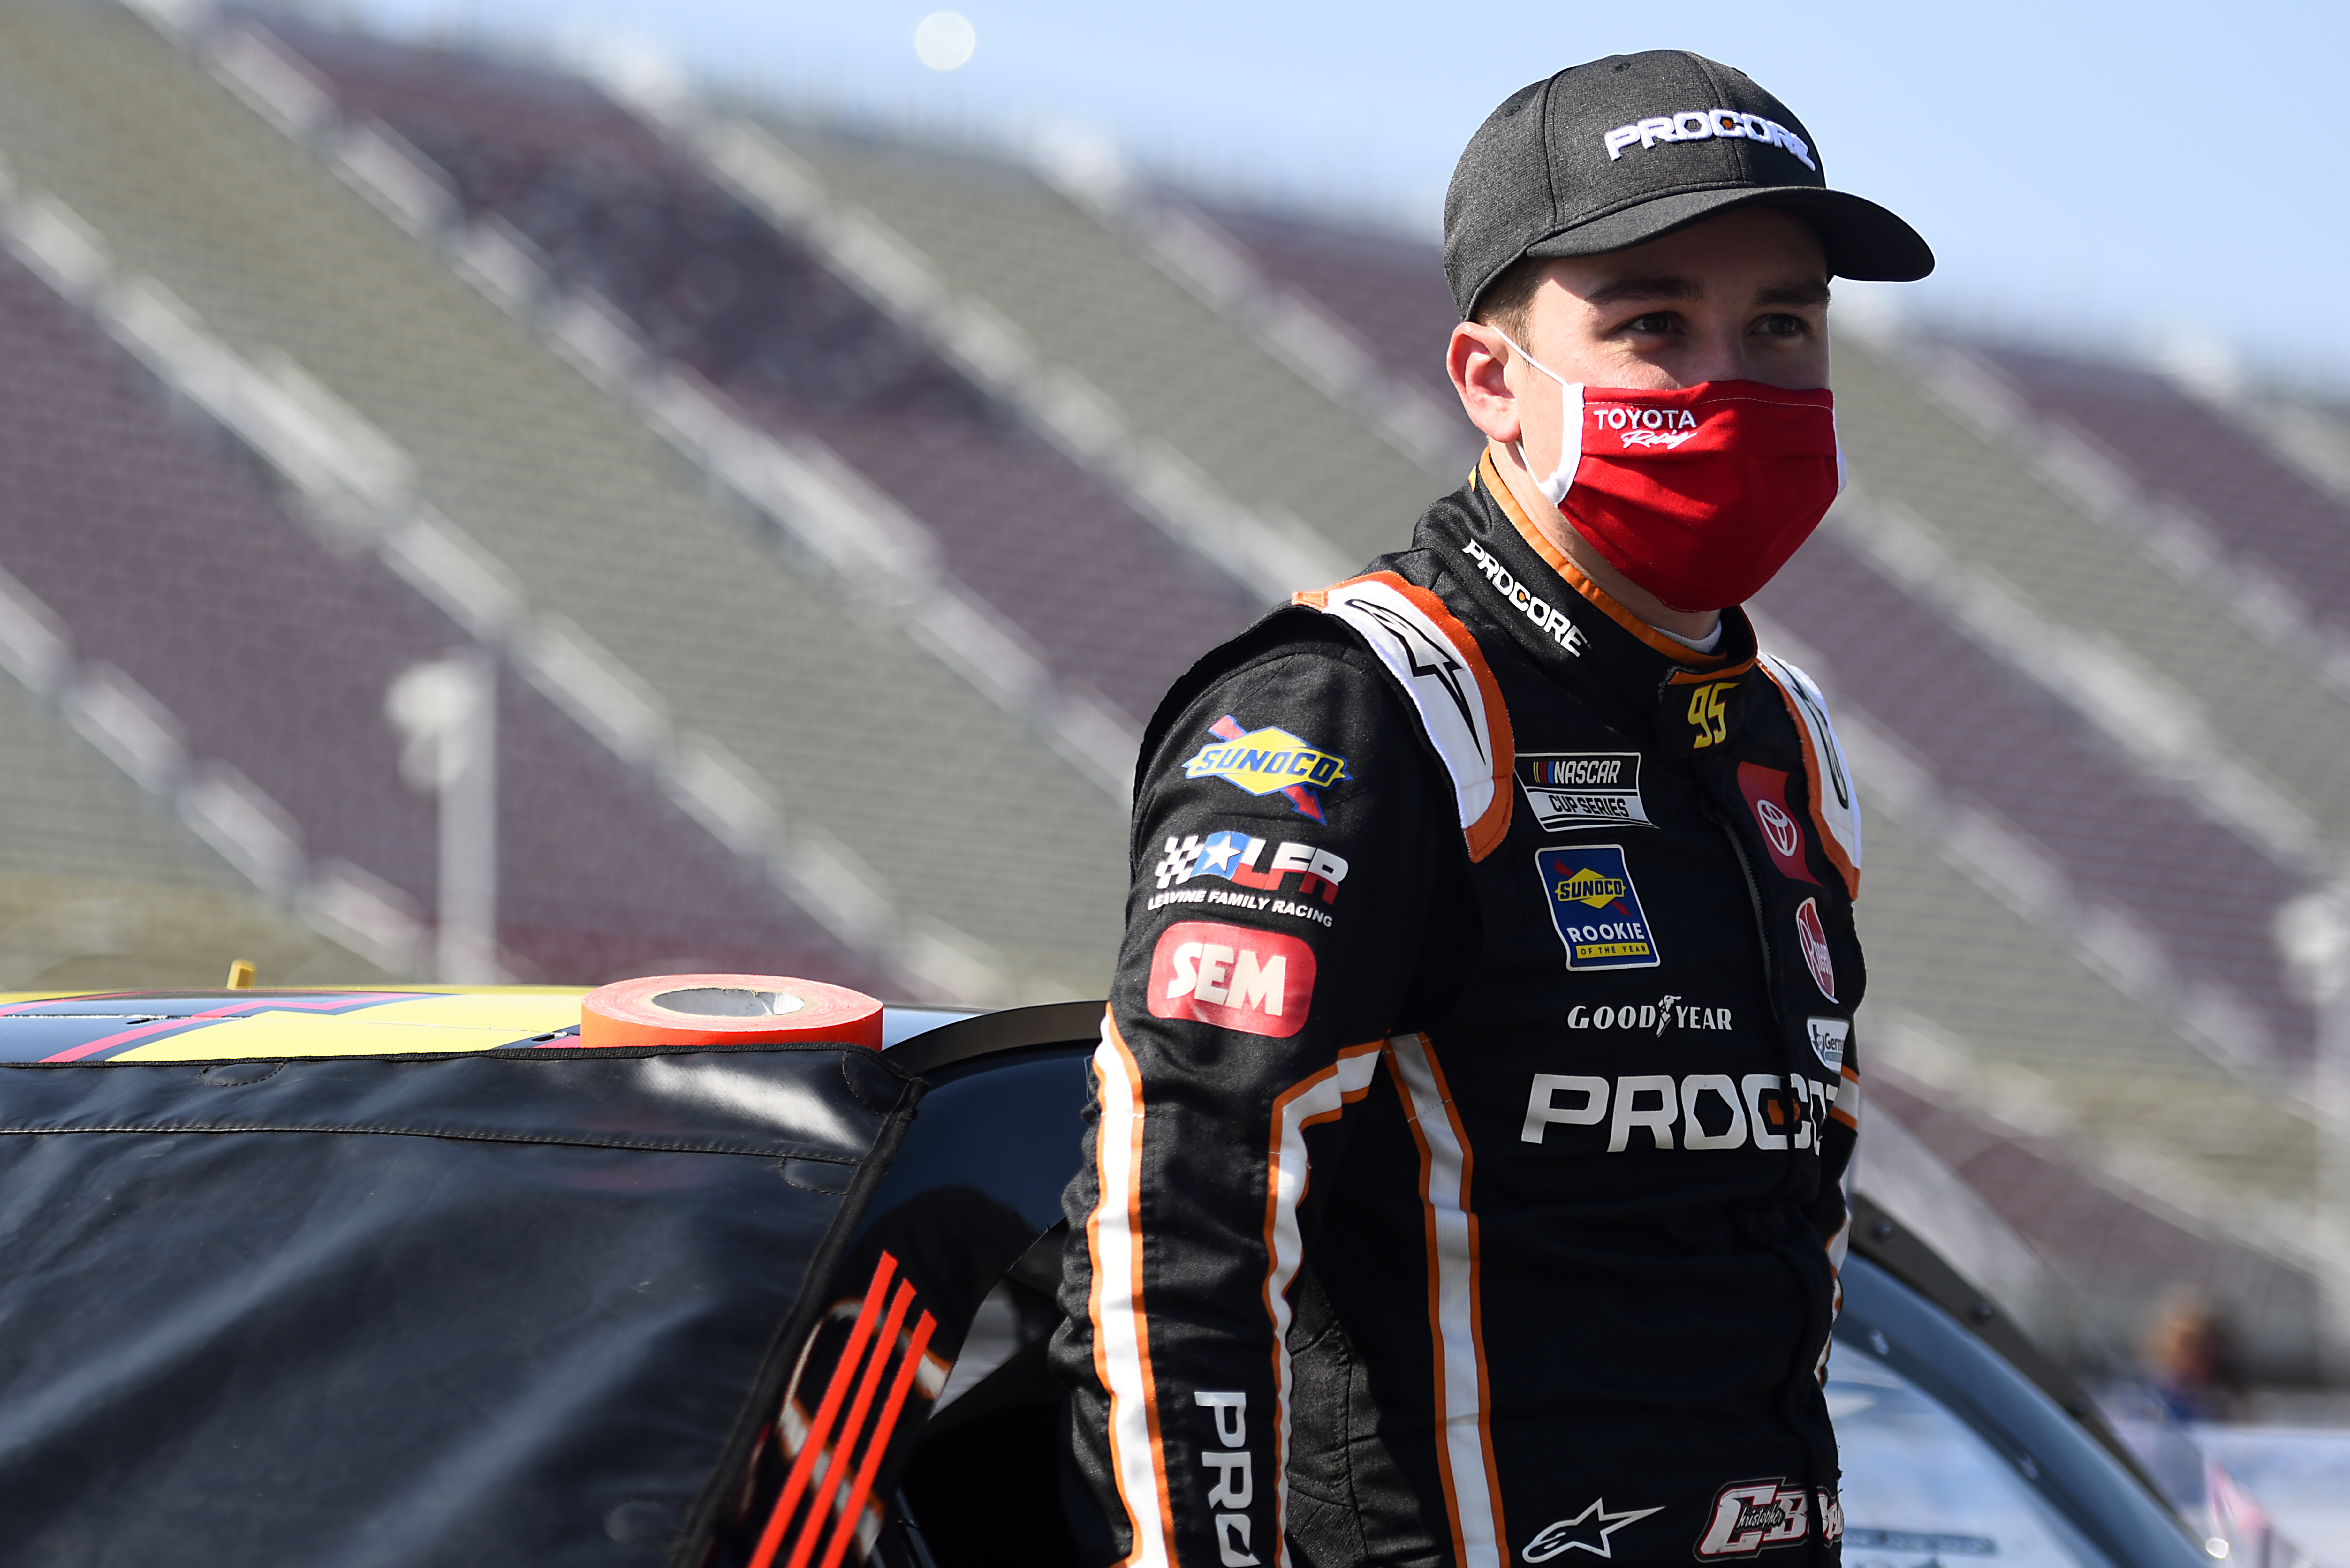 Young NASCAR driver Christopher Bell spent a few years racing under Kyle Busch. Bell just fired a direct shot at Busch's attitude and behavior.